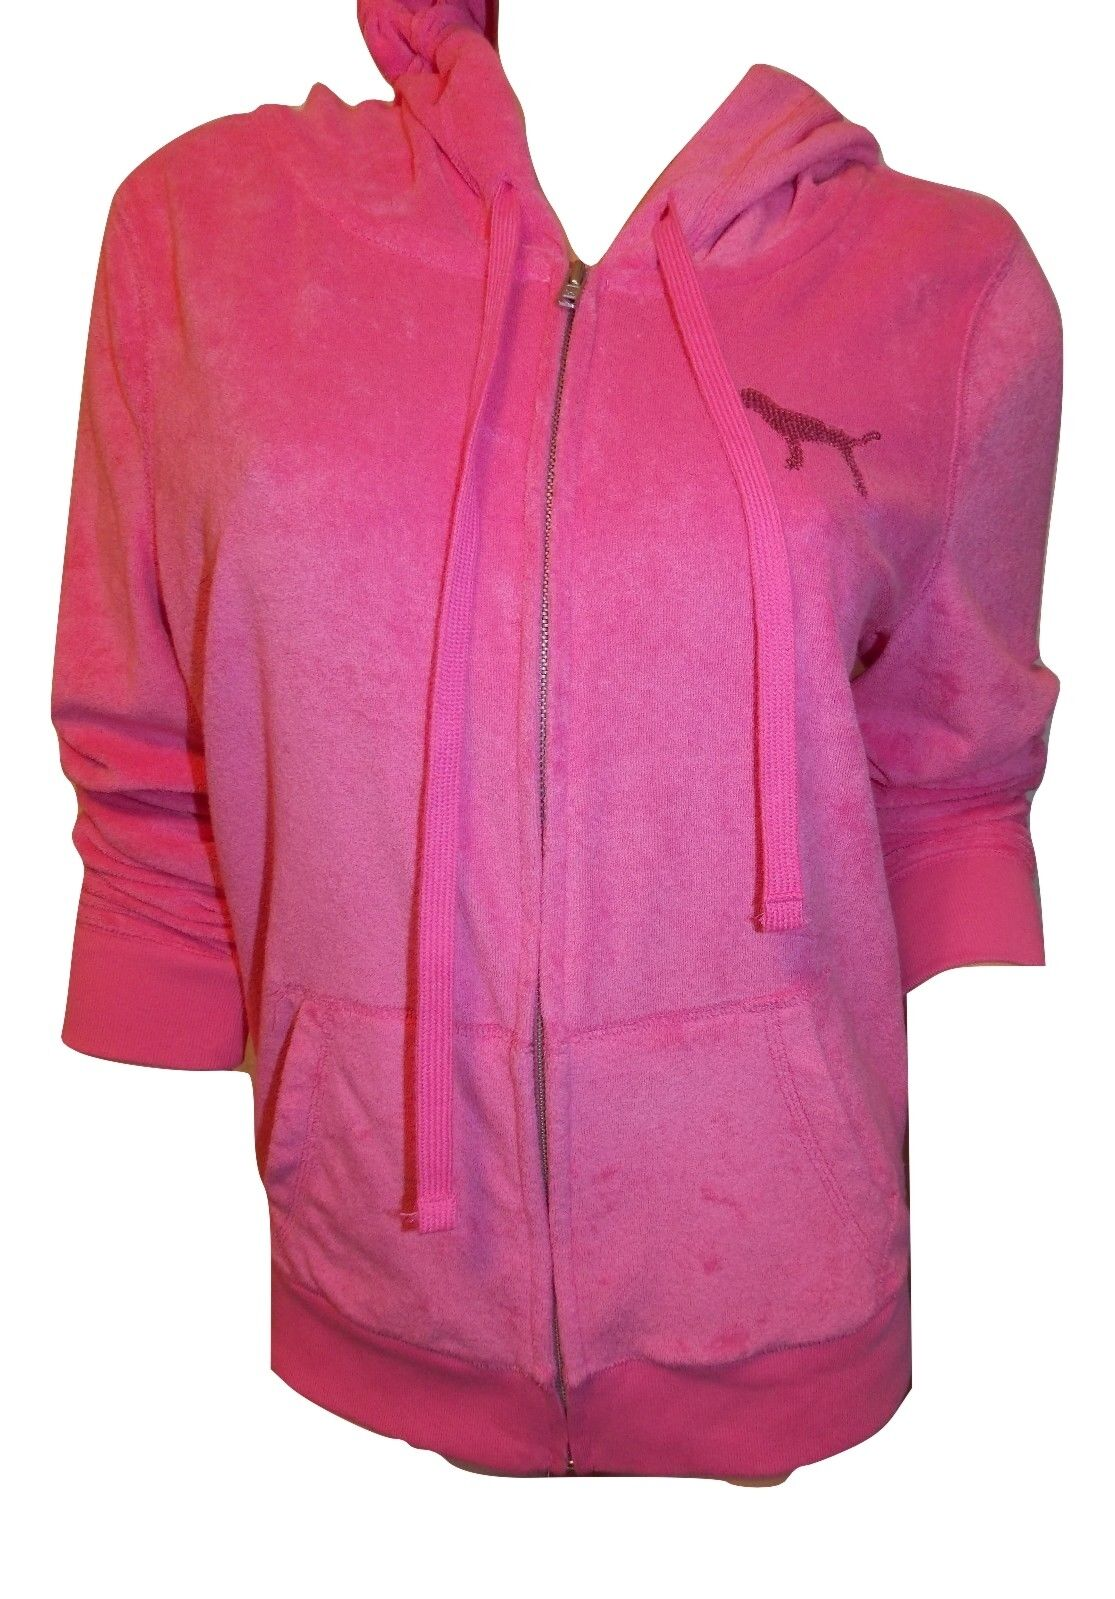 Victoria's Secret Pink Pink Pink NWT Soft French Terry Full Zip Hoodie color Pink Large d3801b